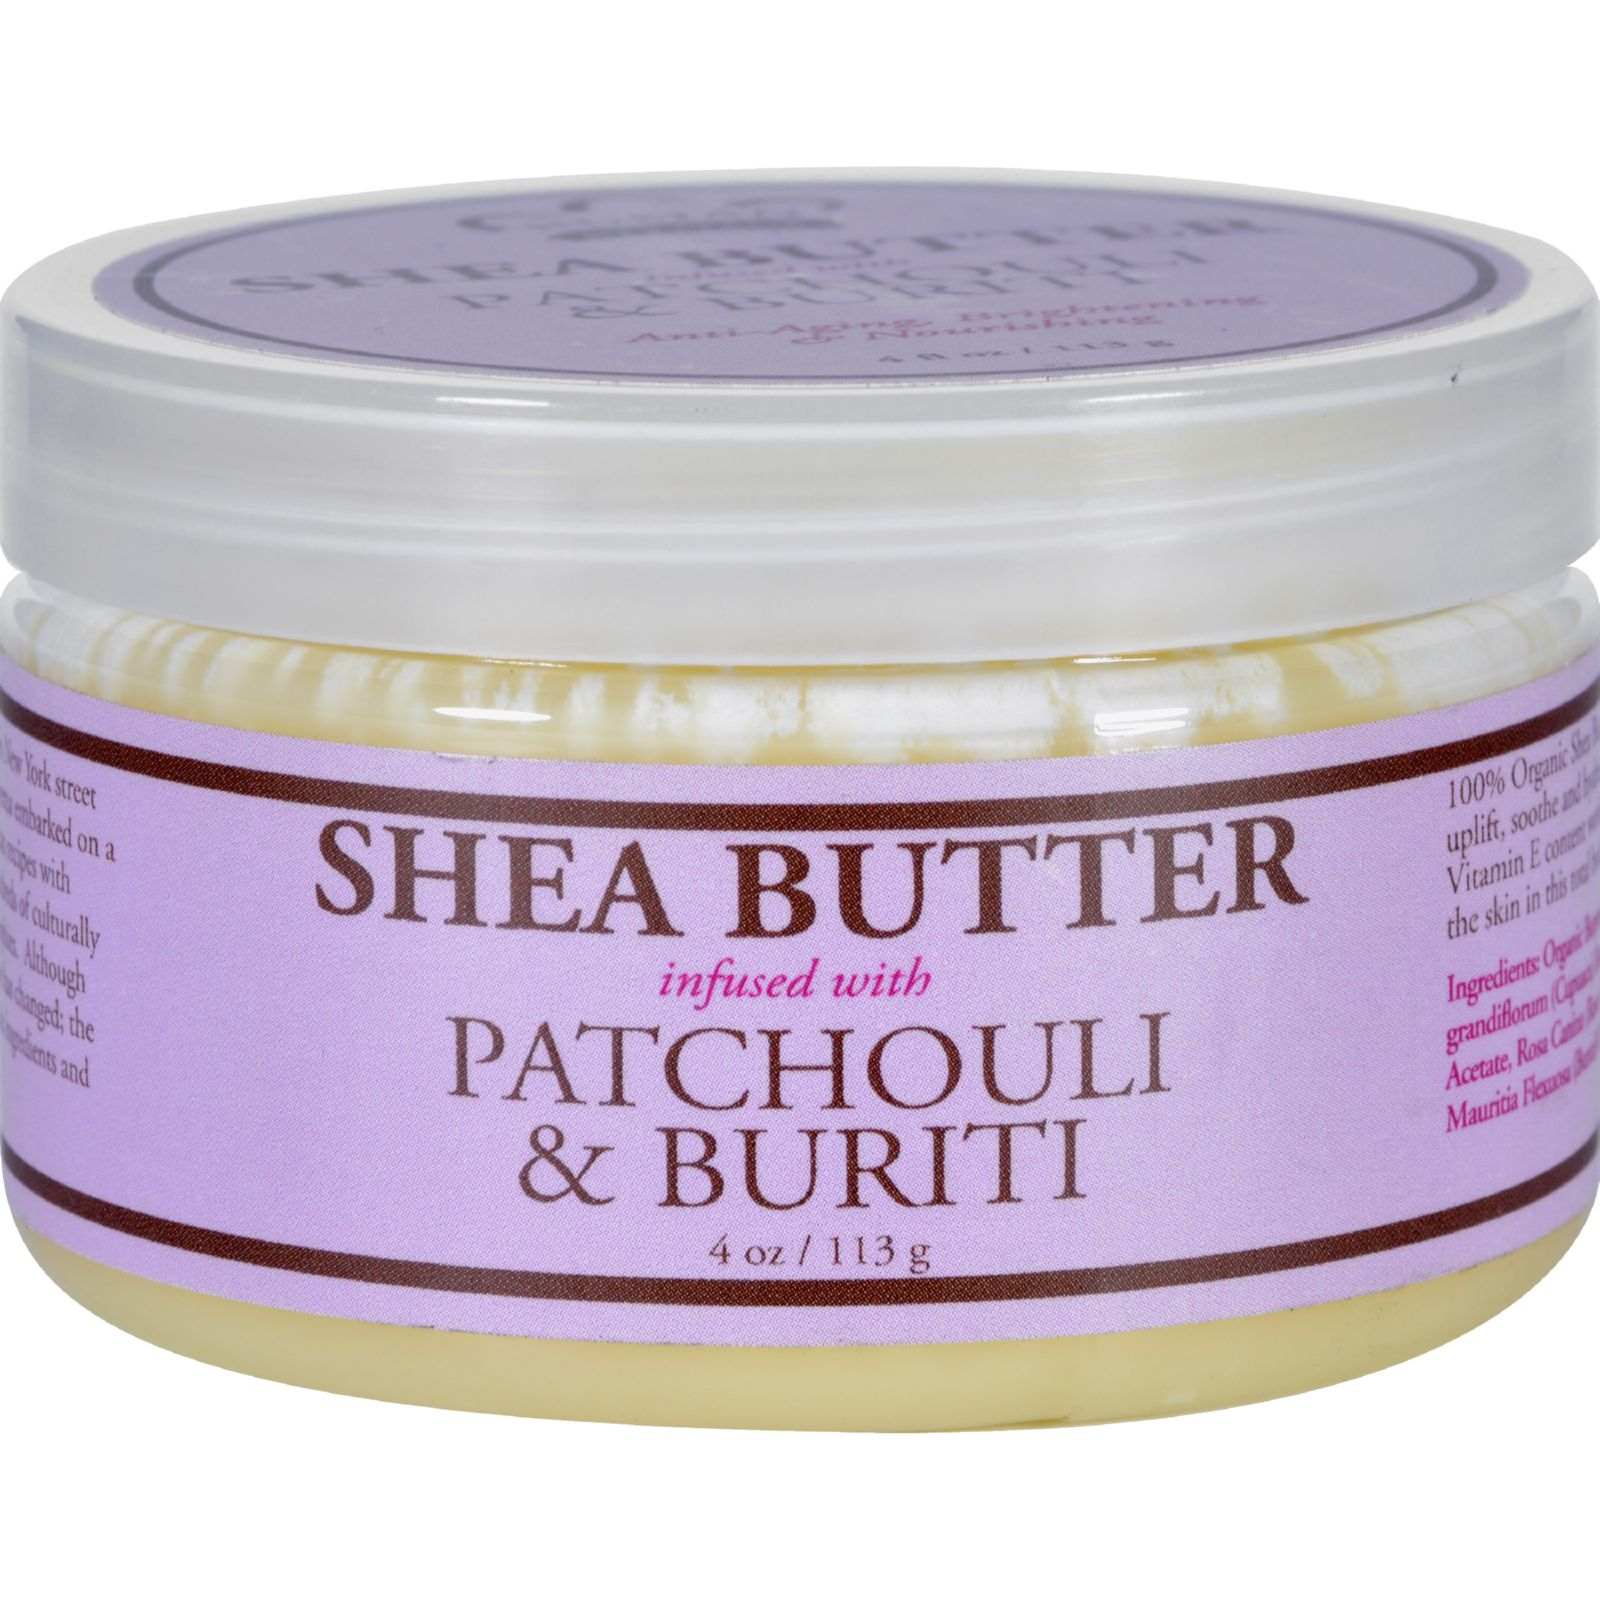 Nubian Heritage Patchouli & Buriti Infused Shea Butter Toning & Uplifting 4 oz All Skin Types